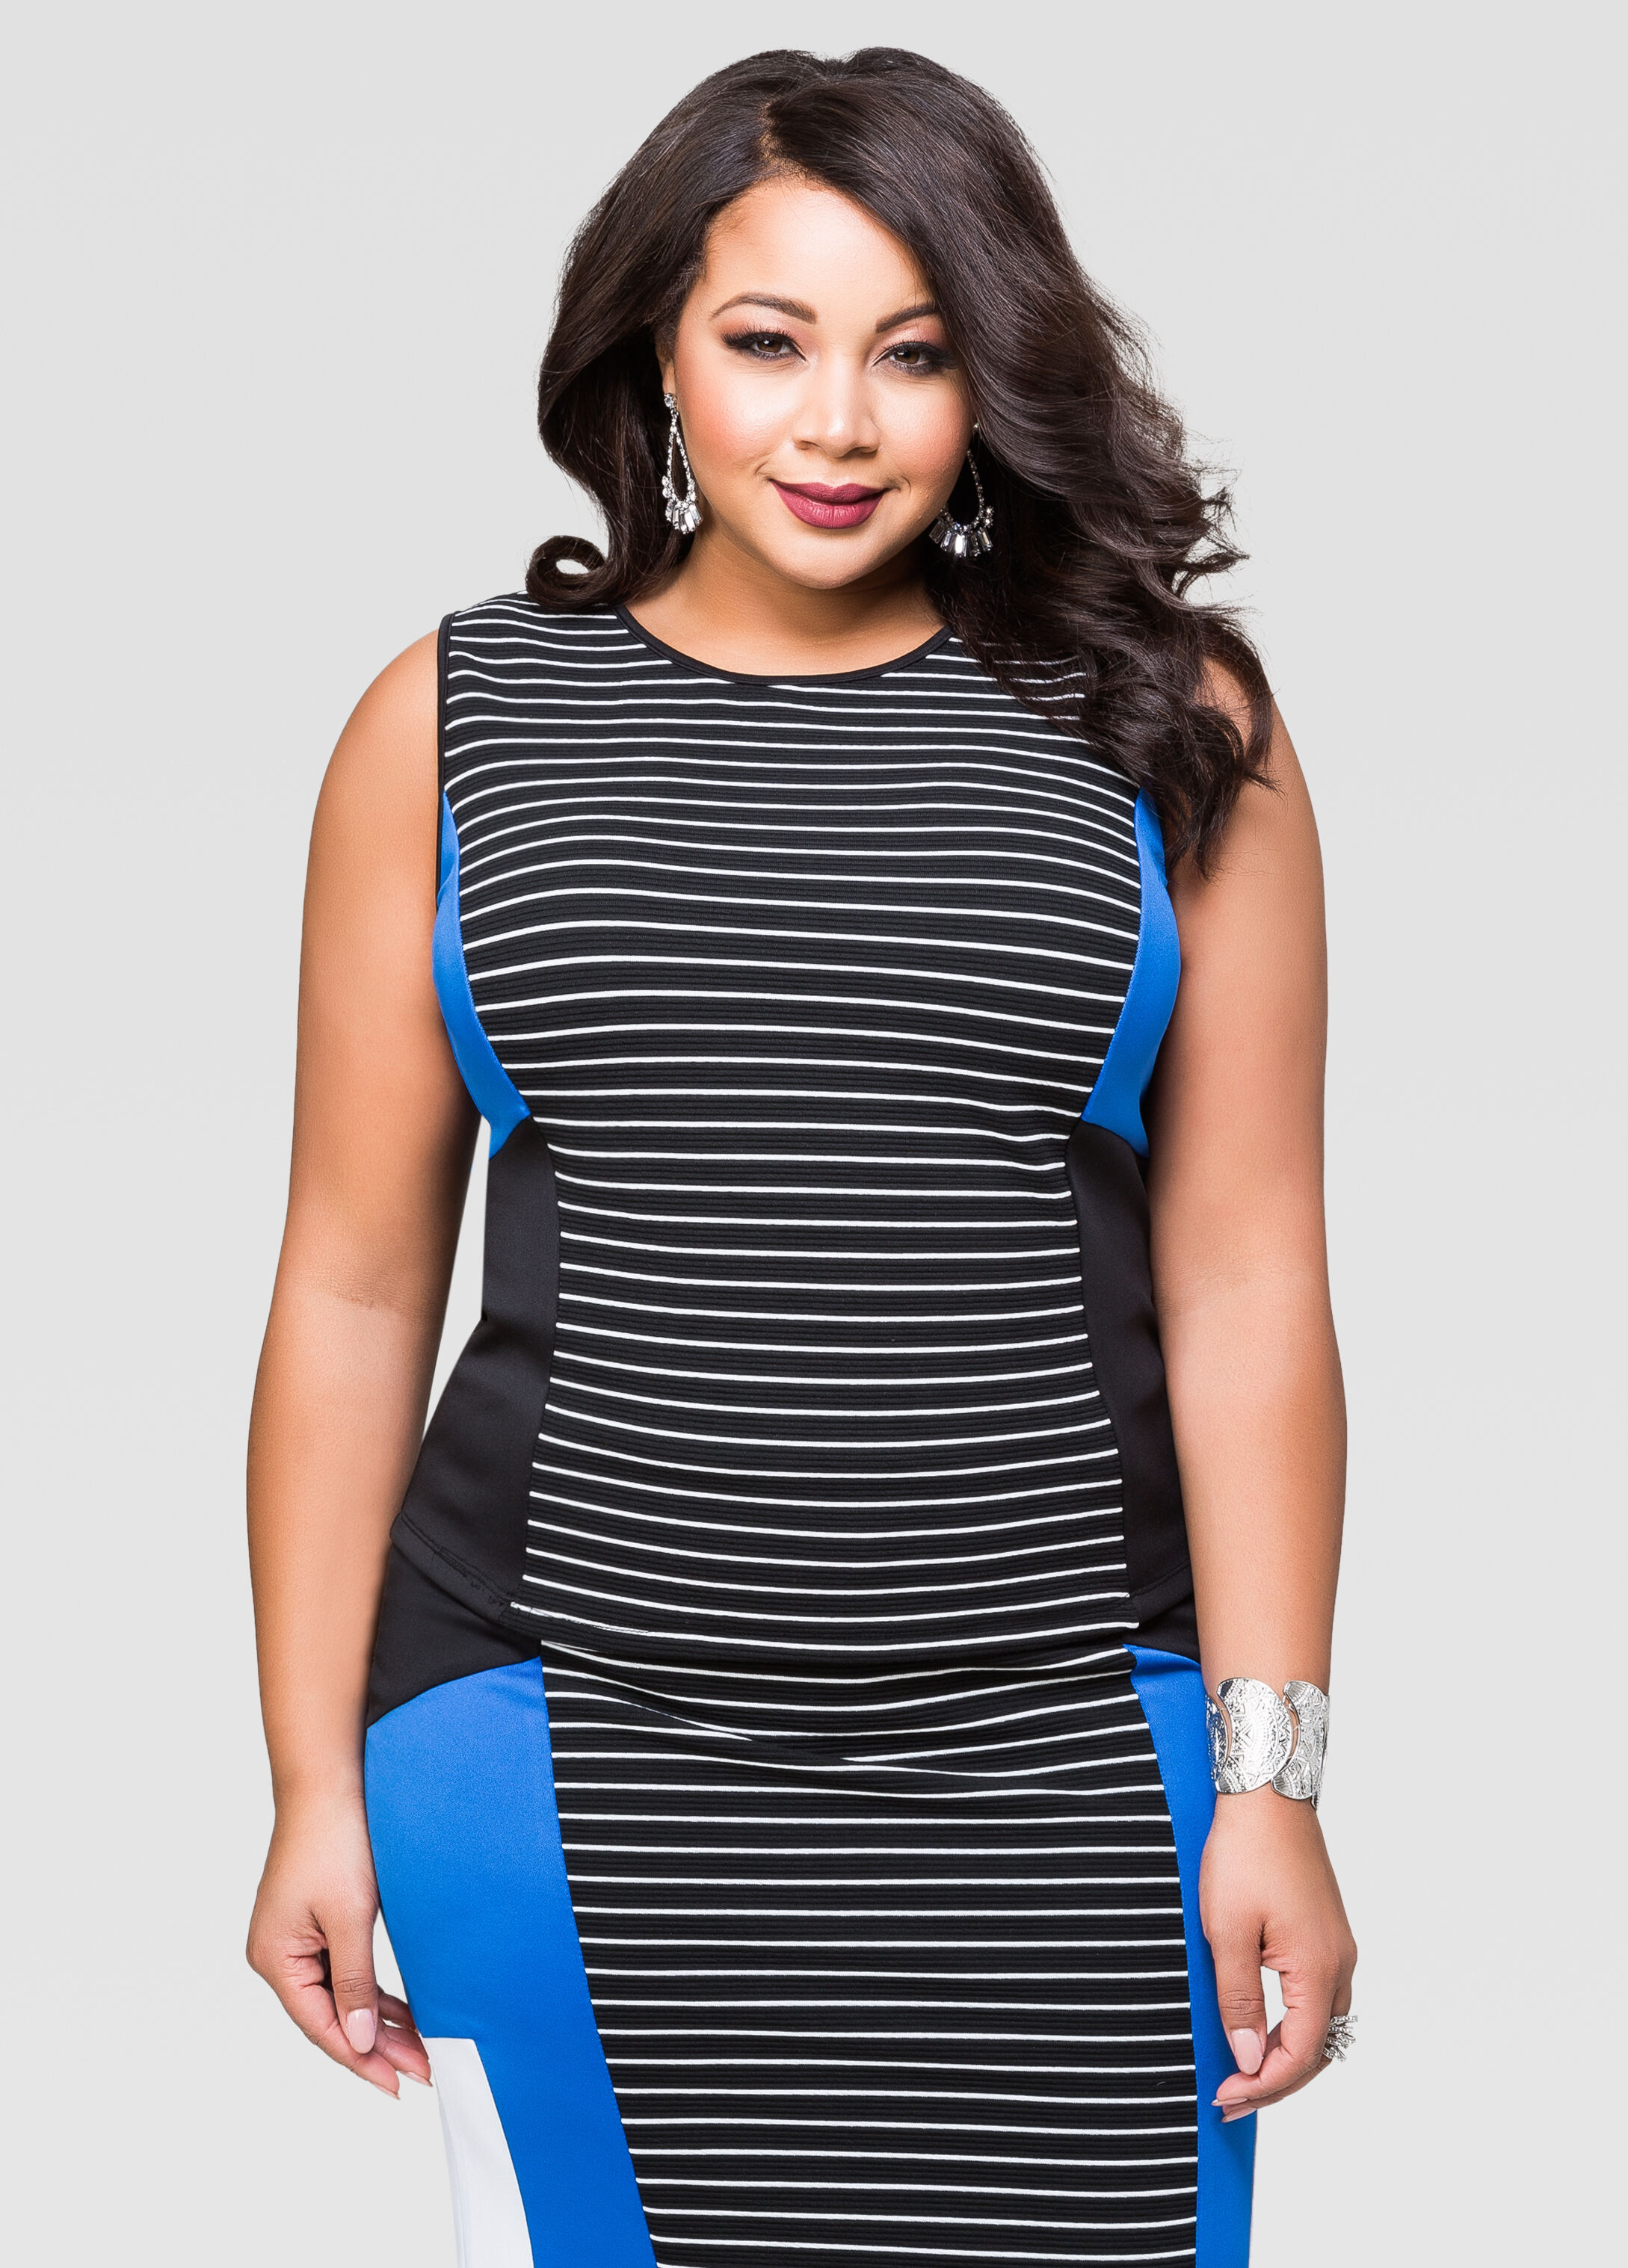 Plus Size Womens Clothing Online Store